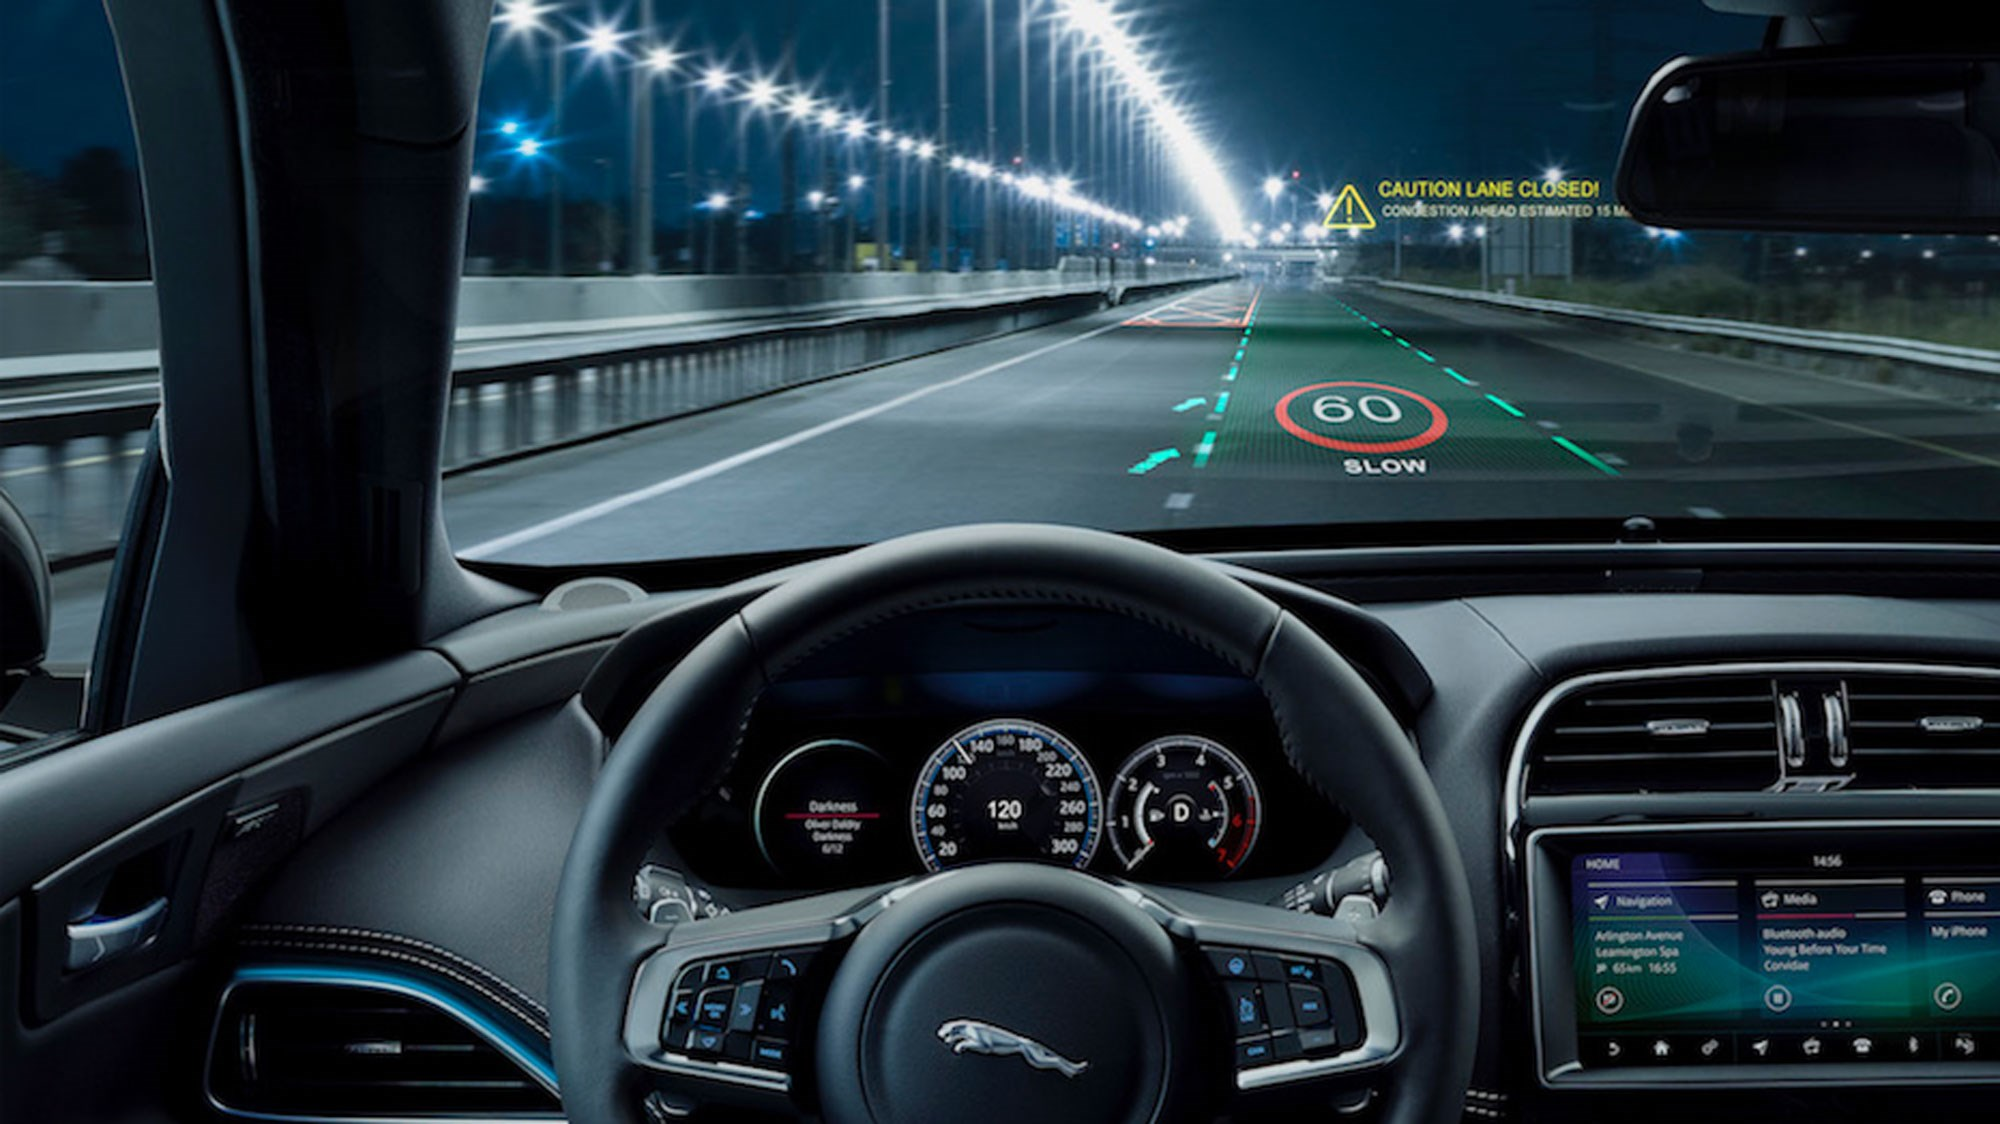 Next-gen JLR 3D head-up display could improve driver reaction times